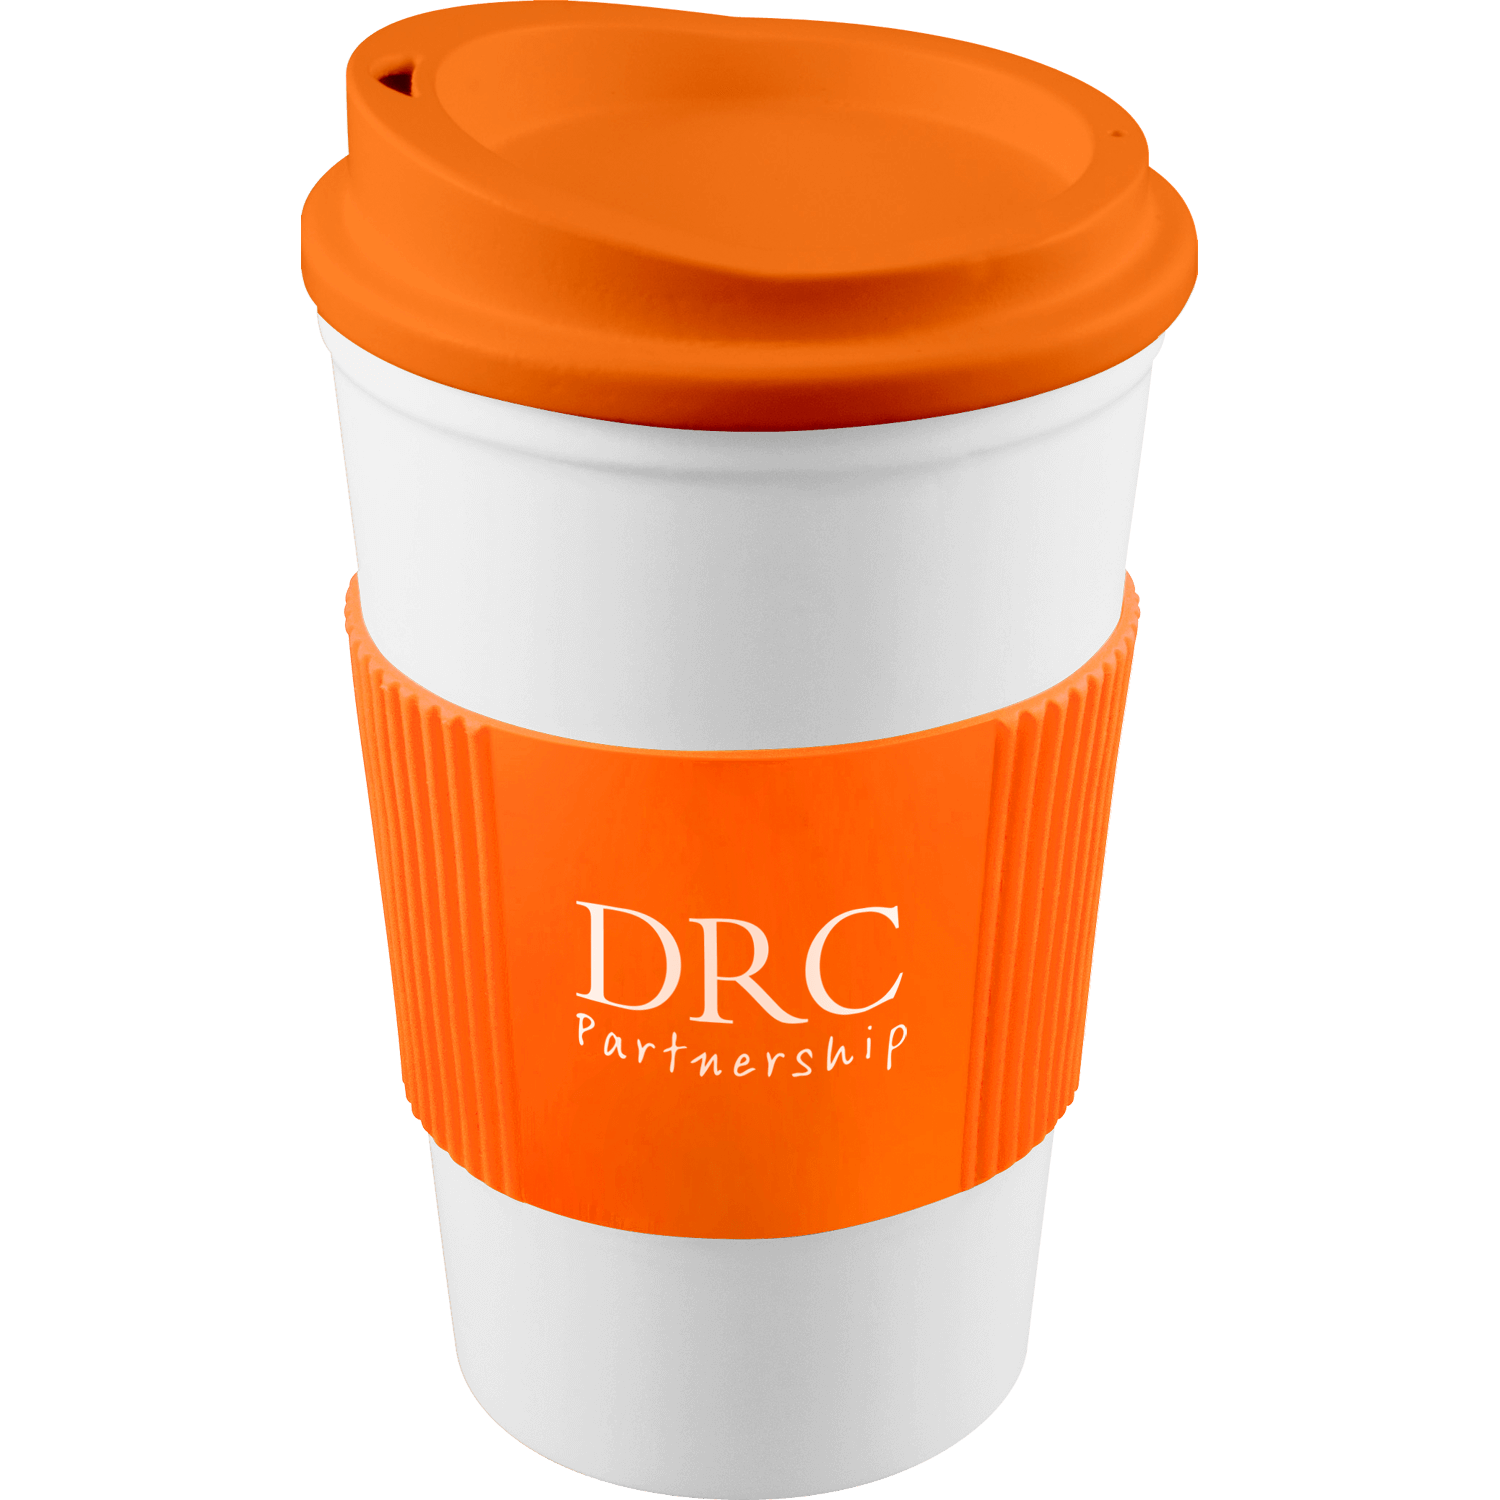 White Mug - Orange Lid (151) - Orange Grip (151)